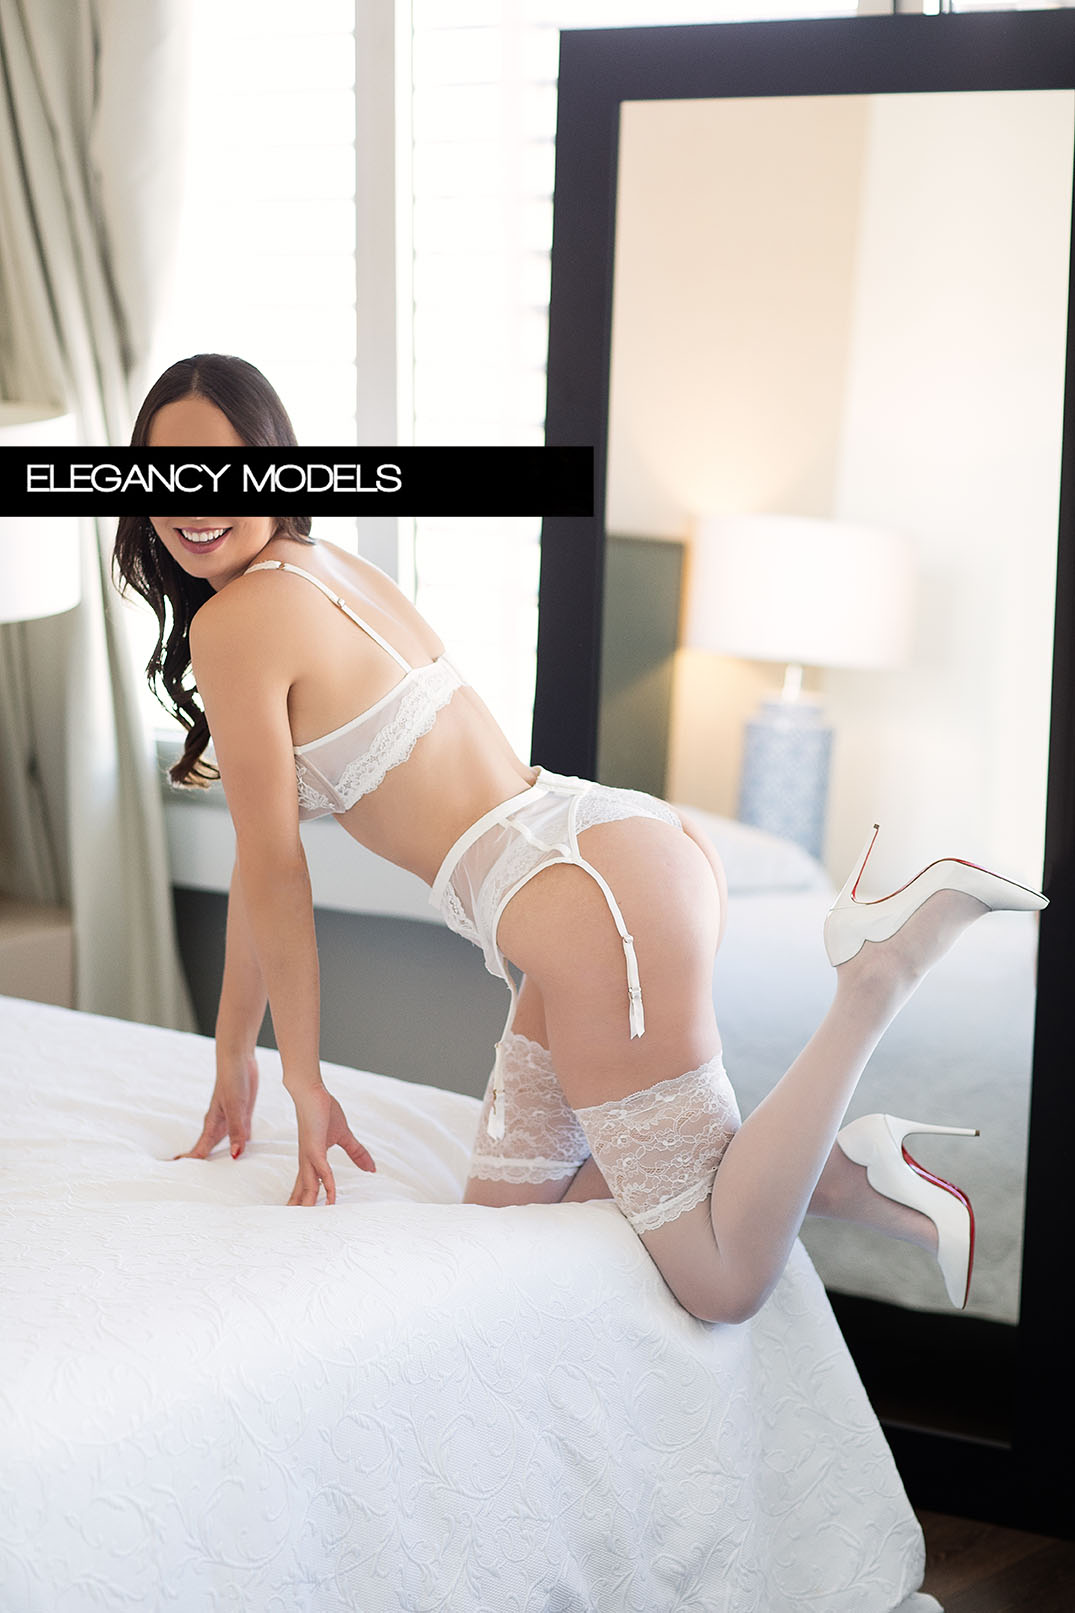 alicia escort madrid 2 2